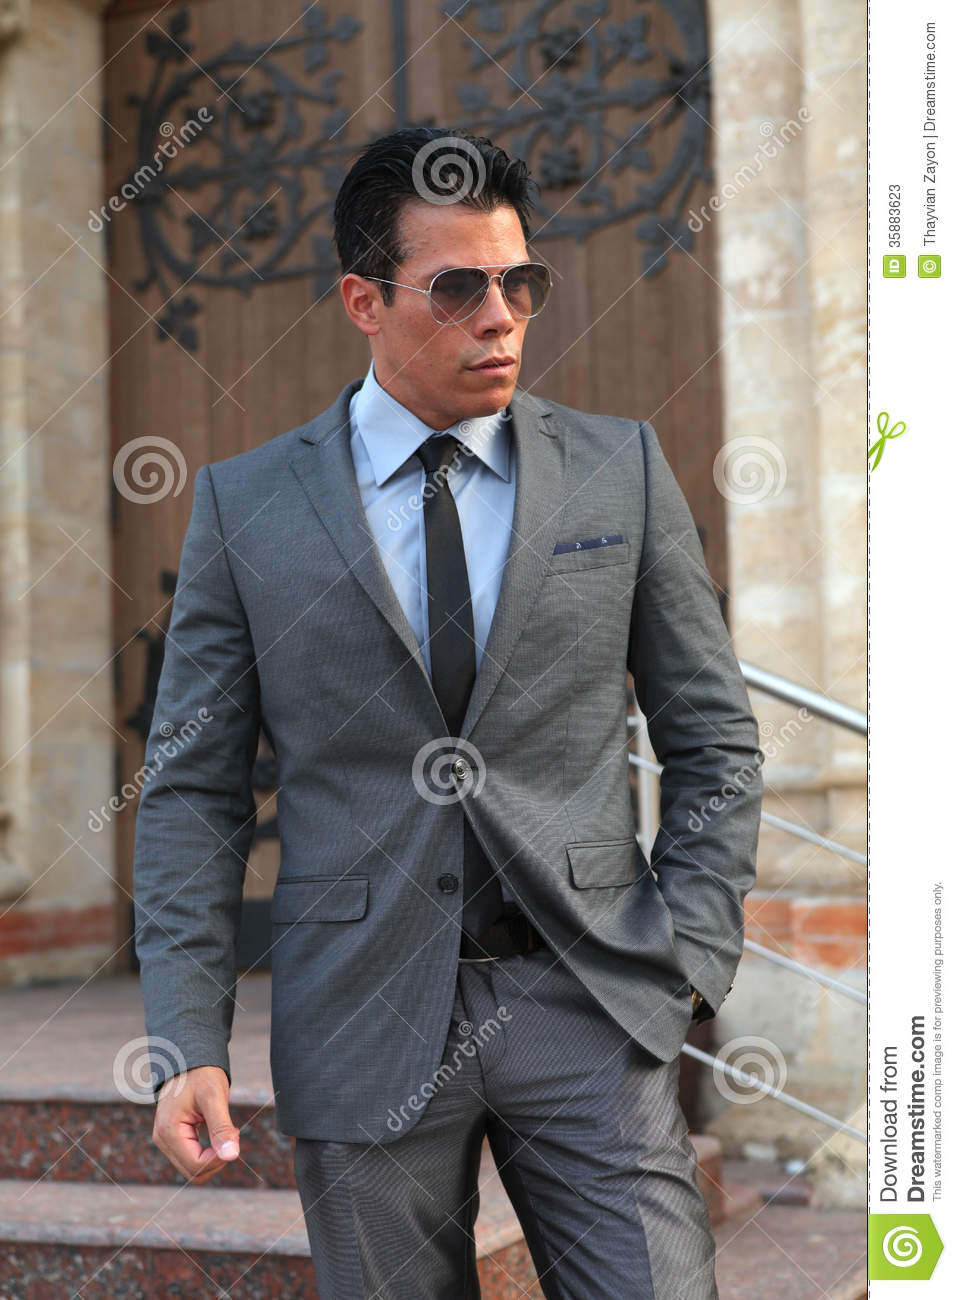 Businessman With Sunglasses Gray Suit Stock Photos